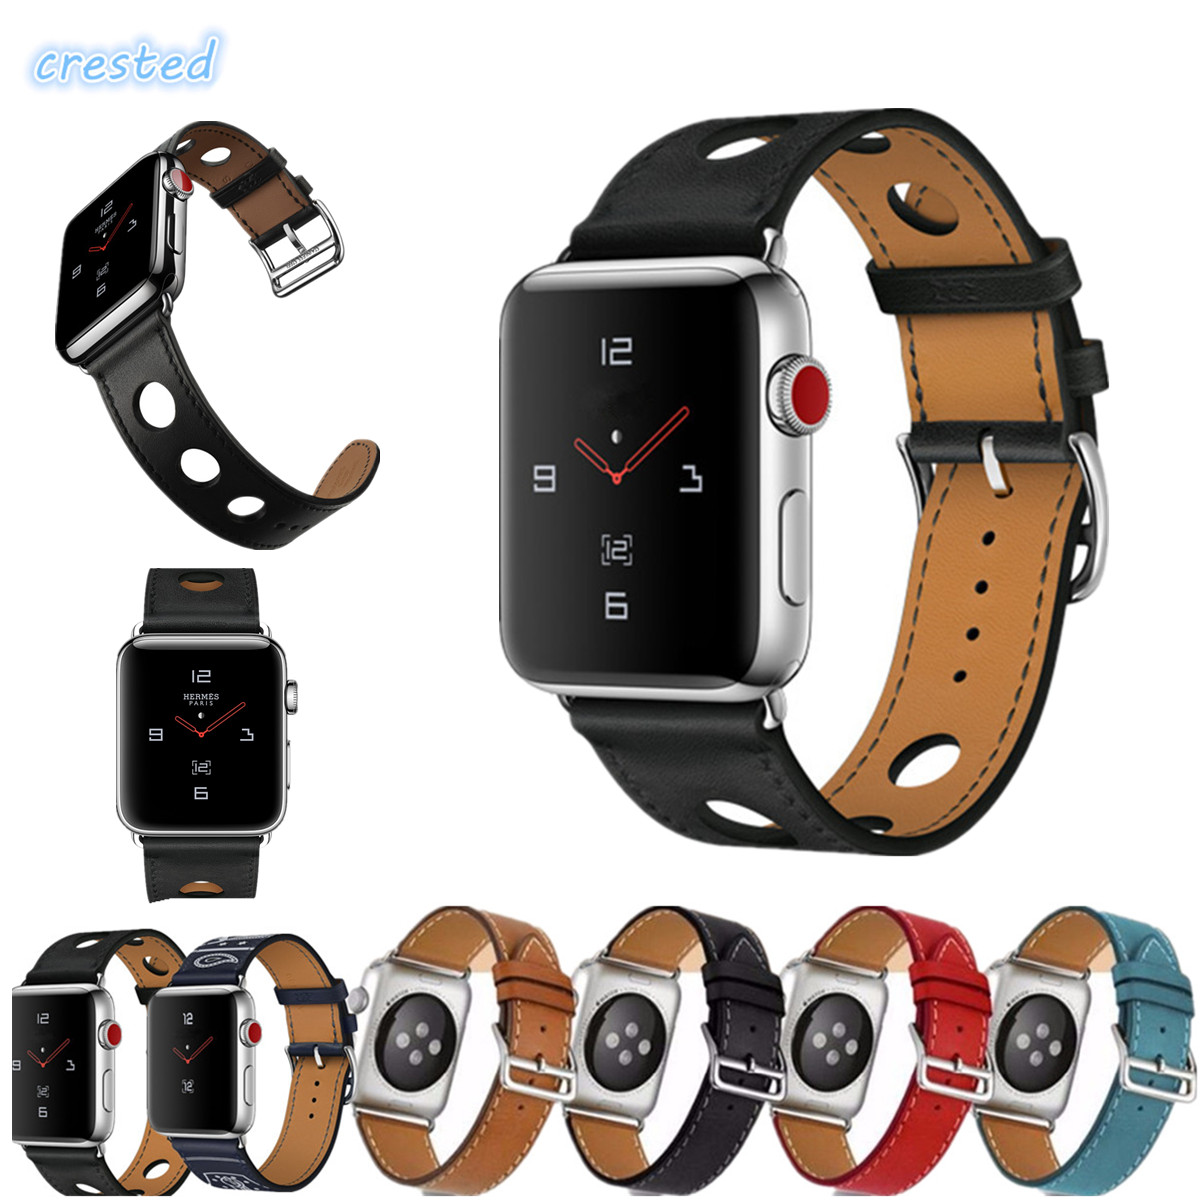 CRESTED Genuine leather watch strap for apple watch band 42mm 38mm bracelet watchband for iwatch 3/2/1 replacement watchstrap 6 colors luxury genuine leather watchband for apple watch sport iwatch 38mm 42mm watch wrist strap bracelect replacement